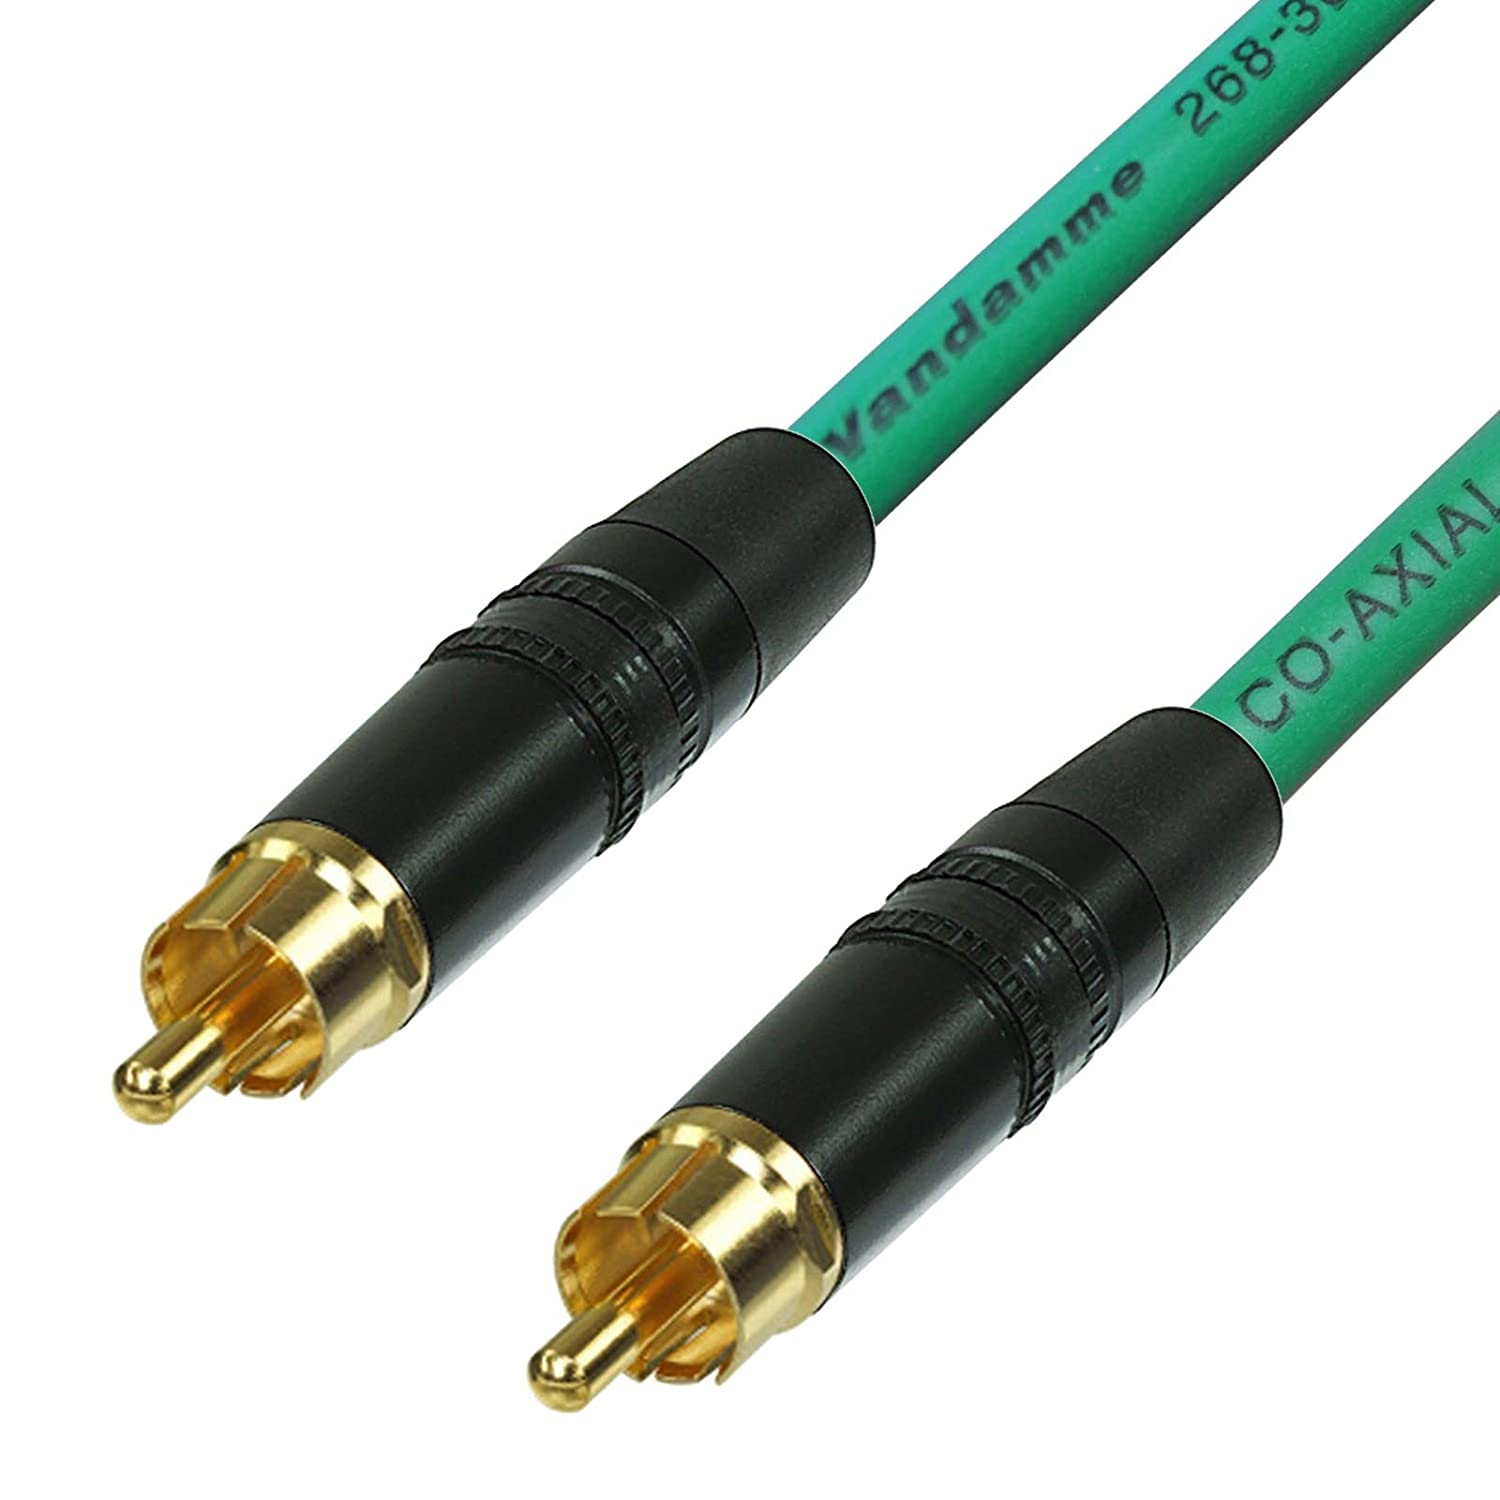 SPDIF Digital Audio Video Coaxial Cable RCA a RCA Van Damme 75 Ohm ...